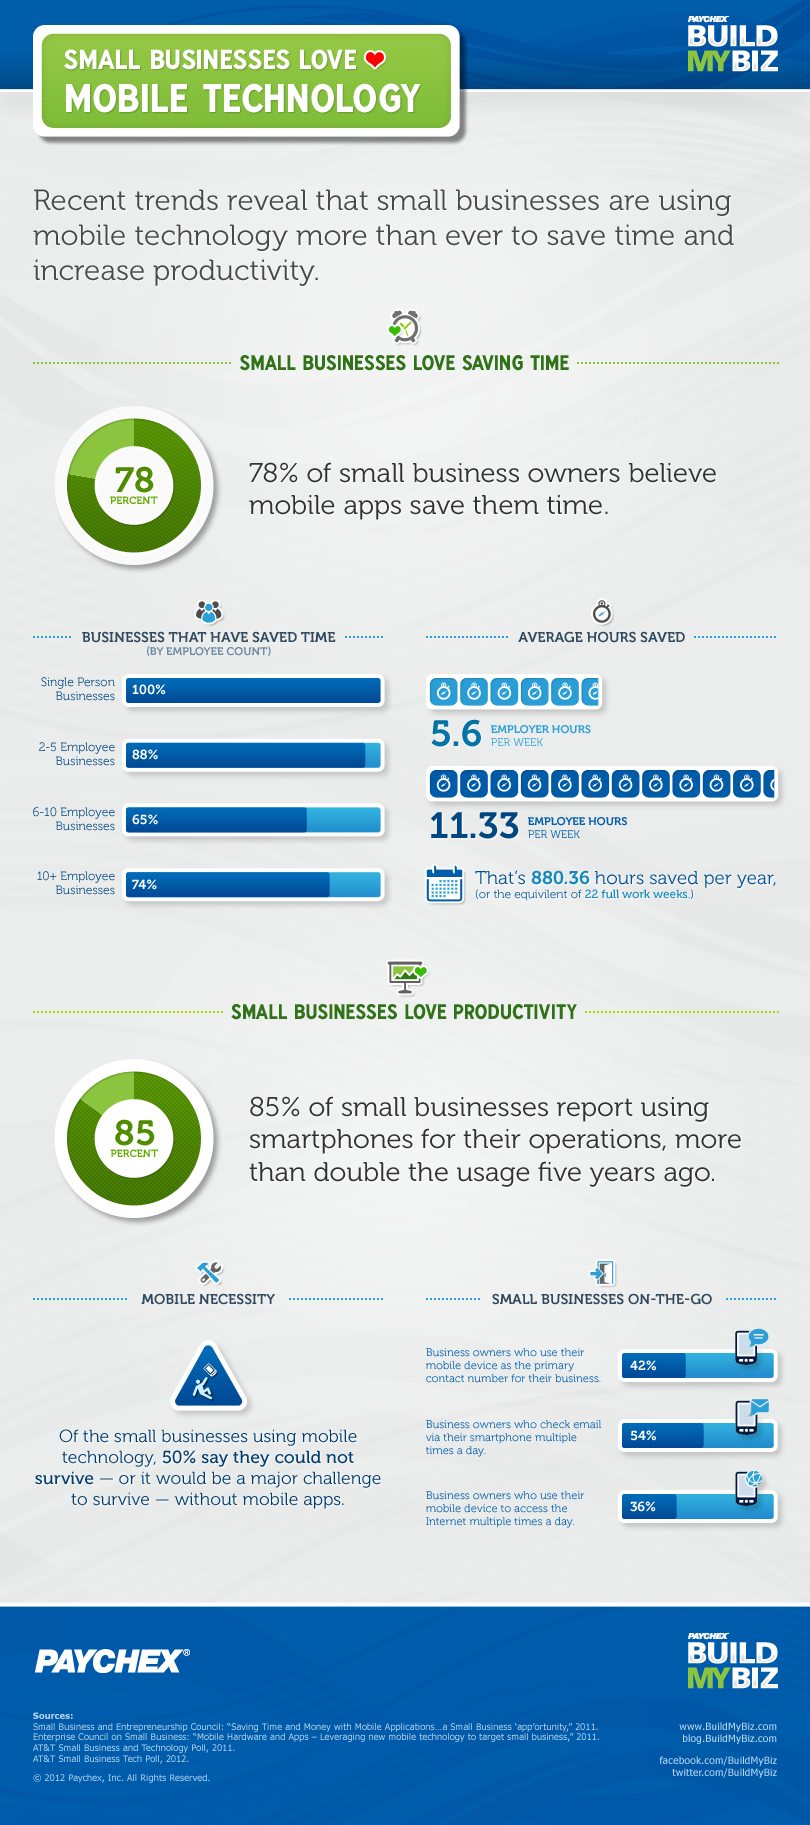 Small Business Loves Mobile Technology